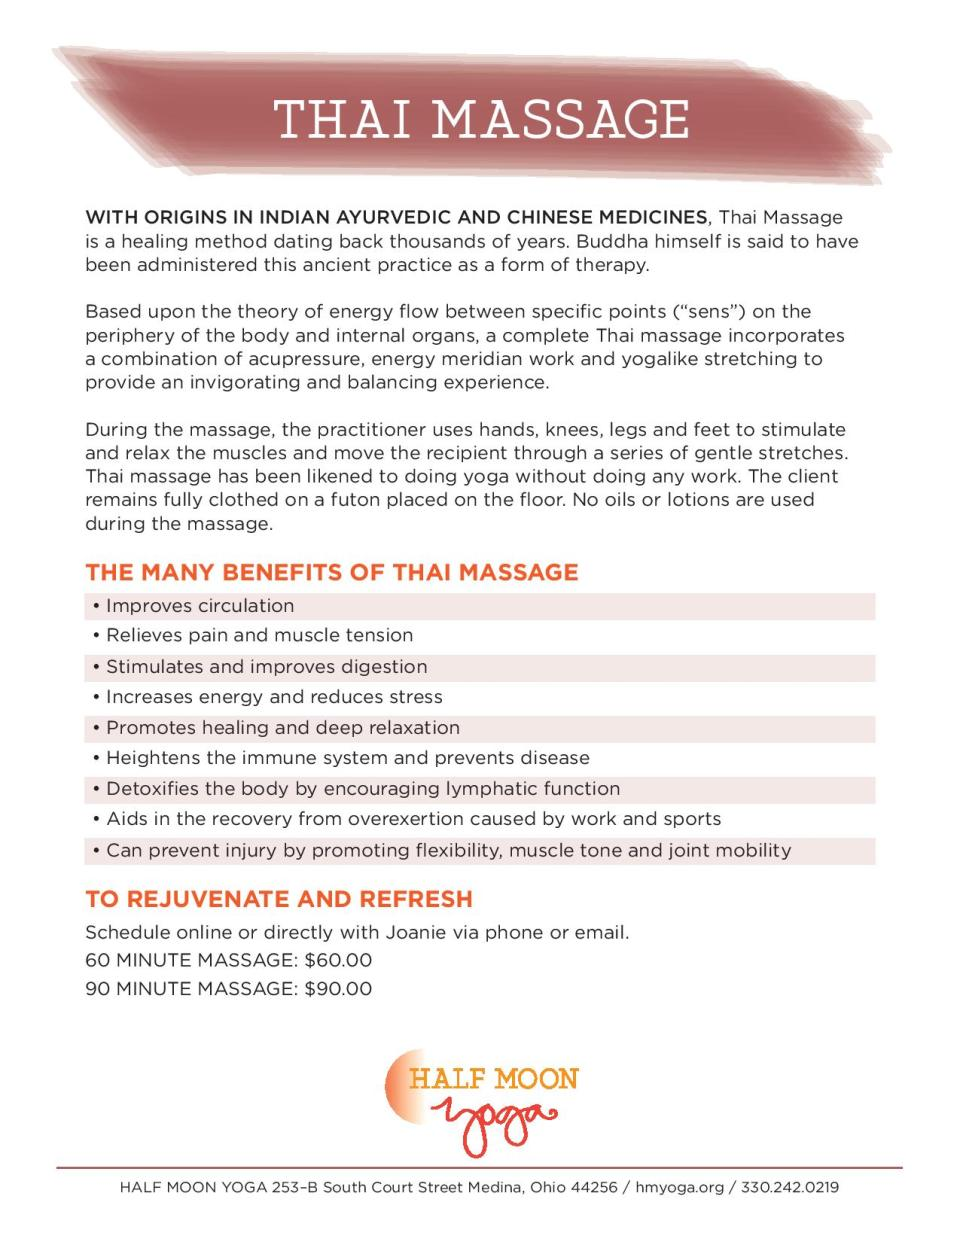 THAI_MASSAGE_OriginPricing (2)-page-001